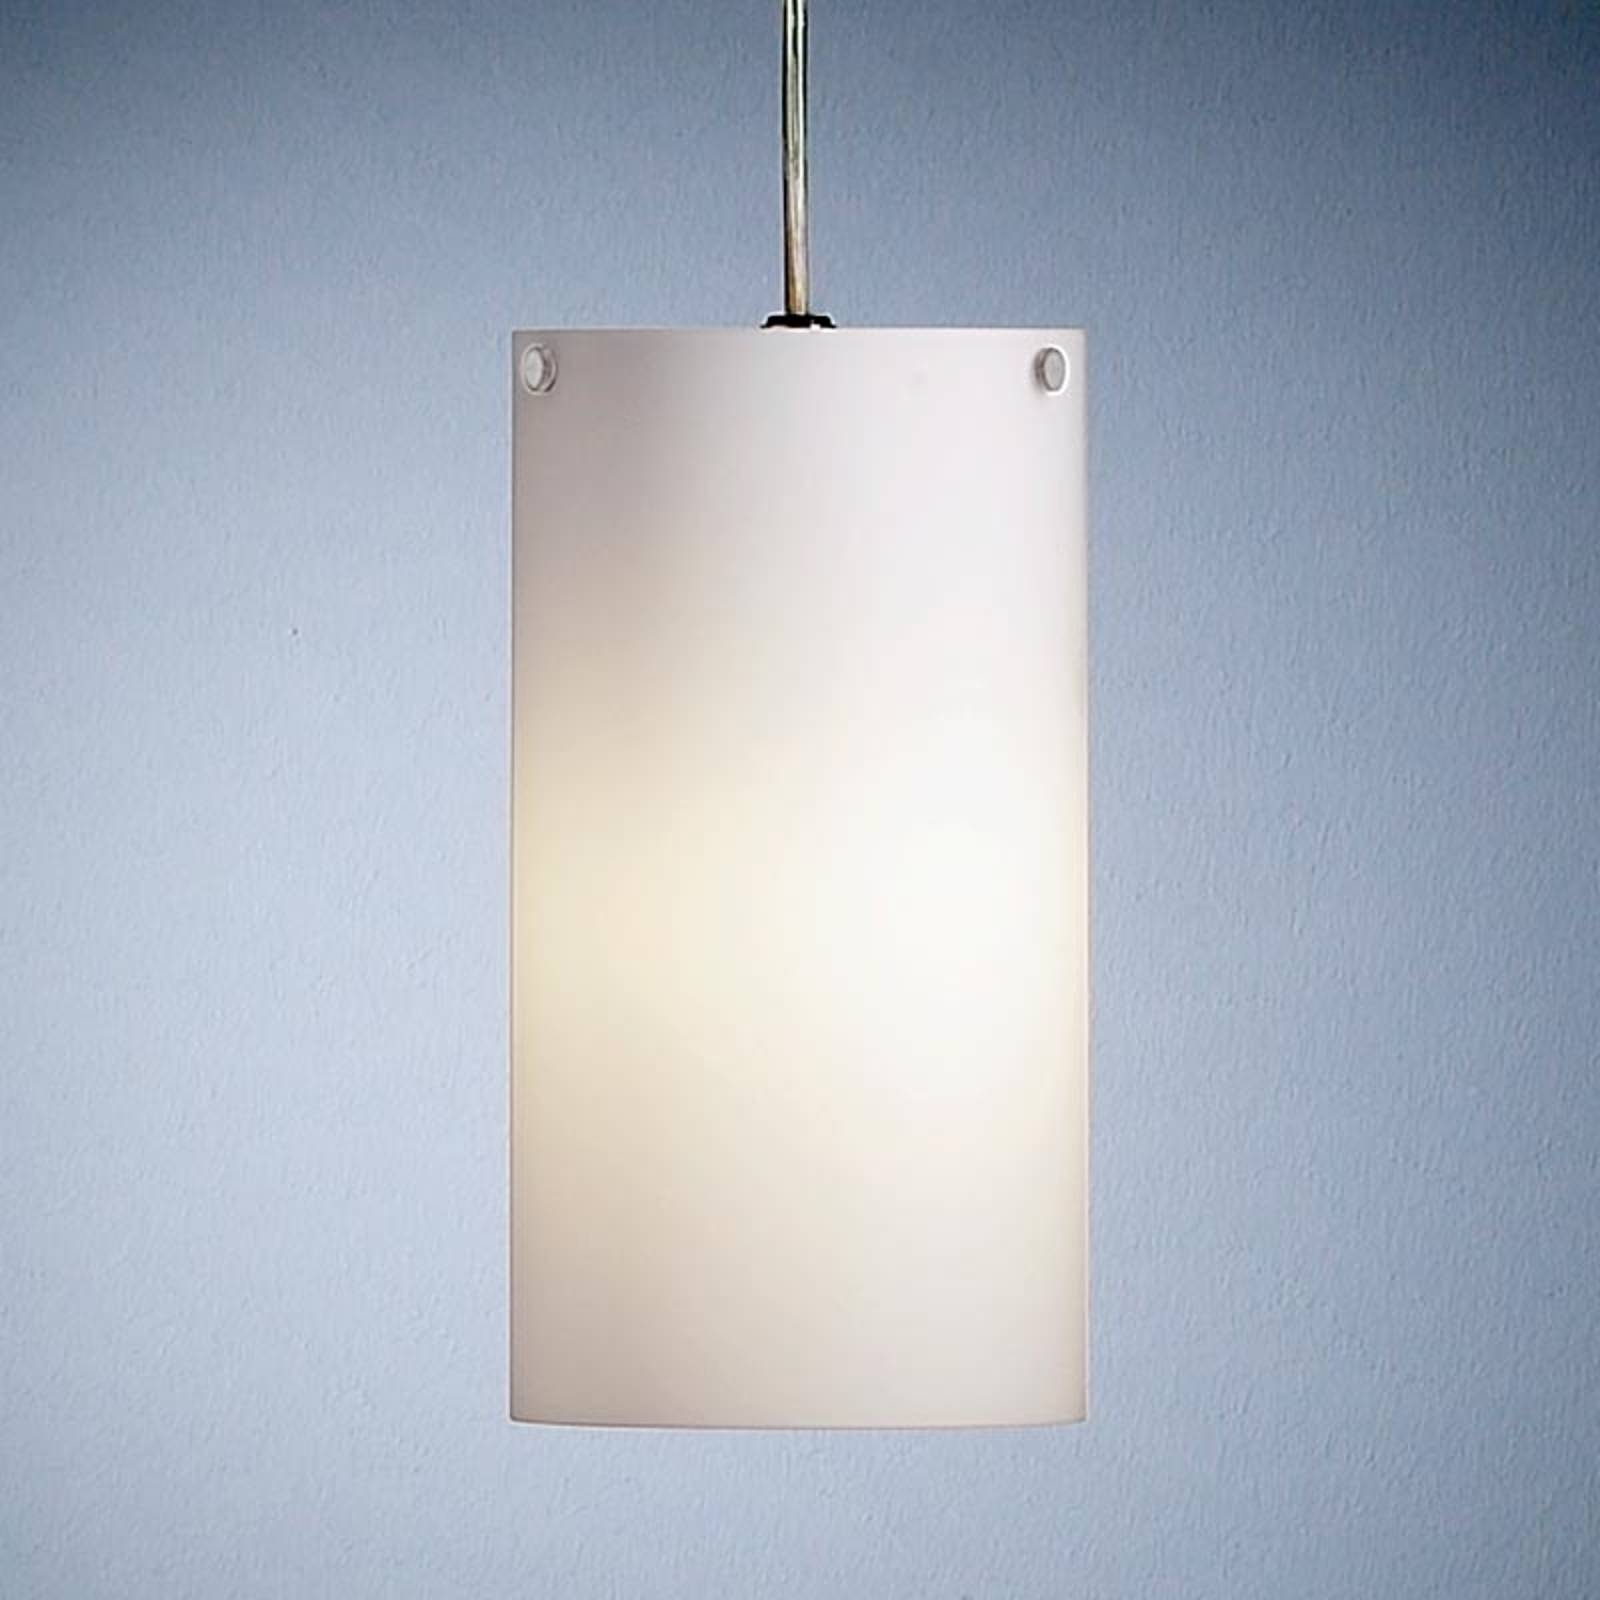 Cylindrical hanging light by Walter Schnepel from TECNOLUMEN